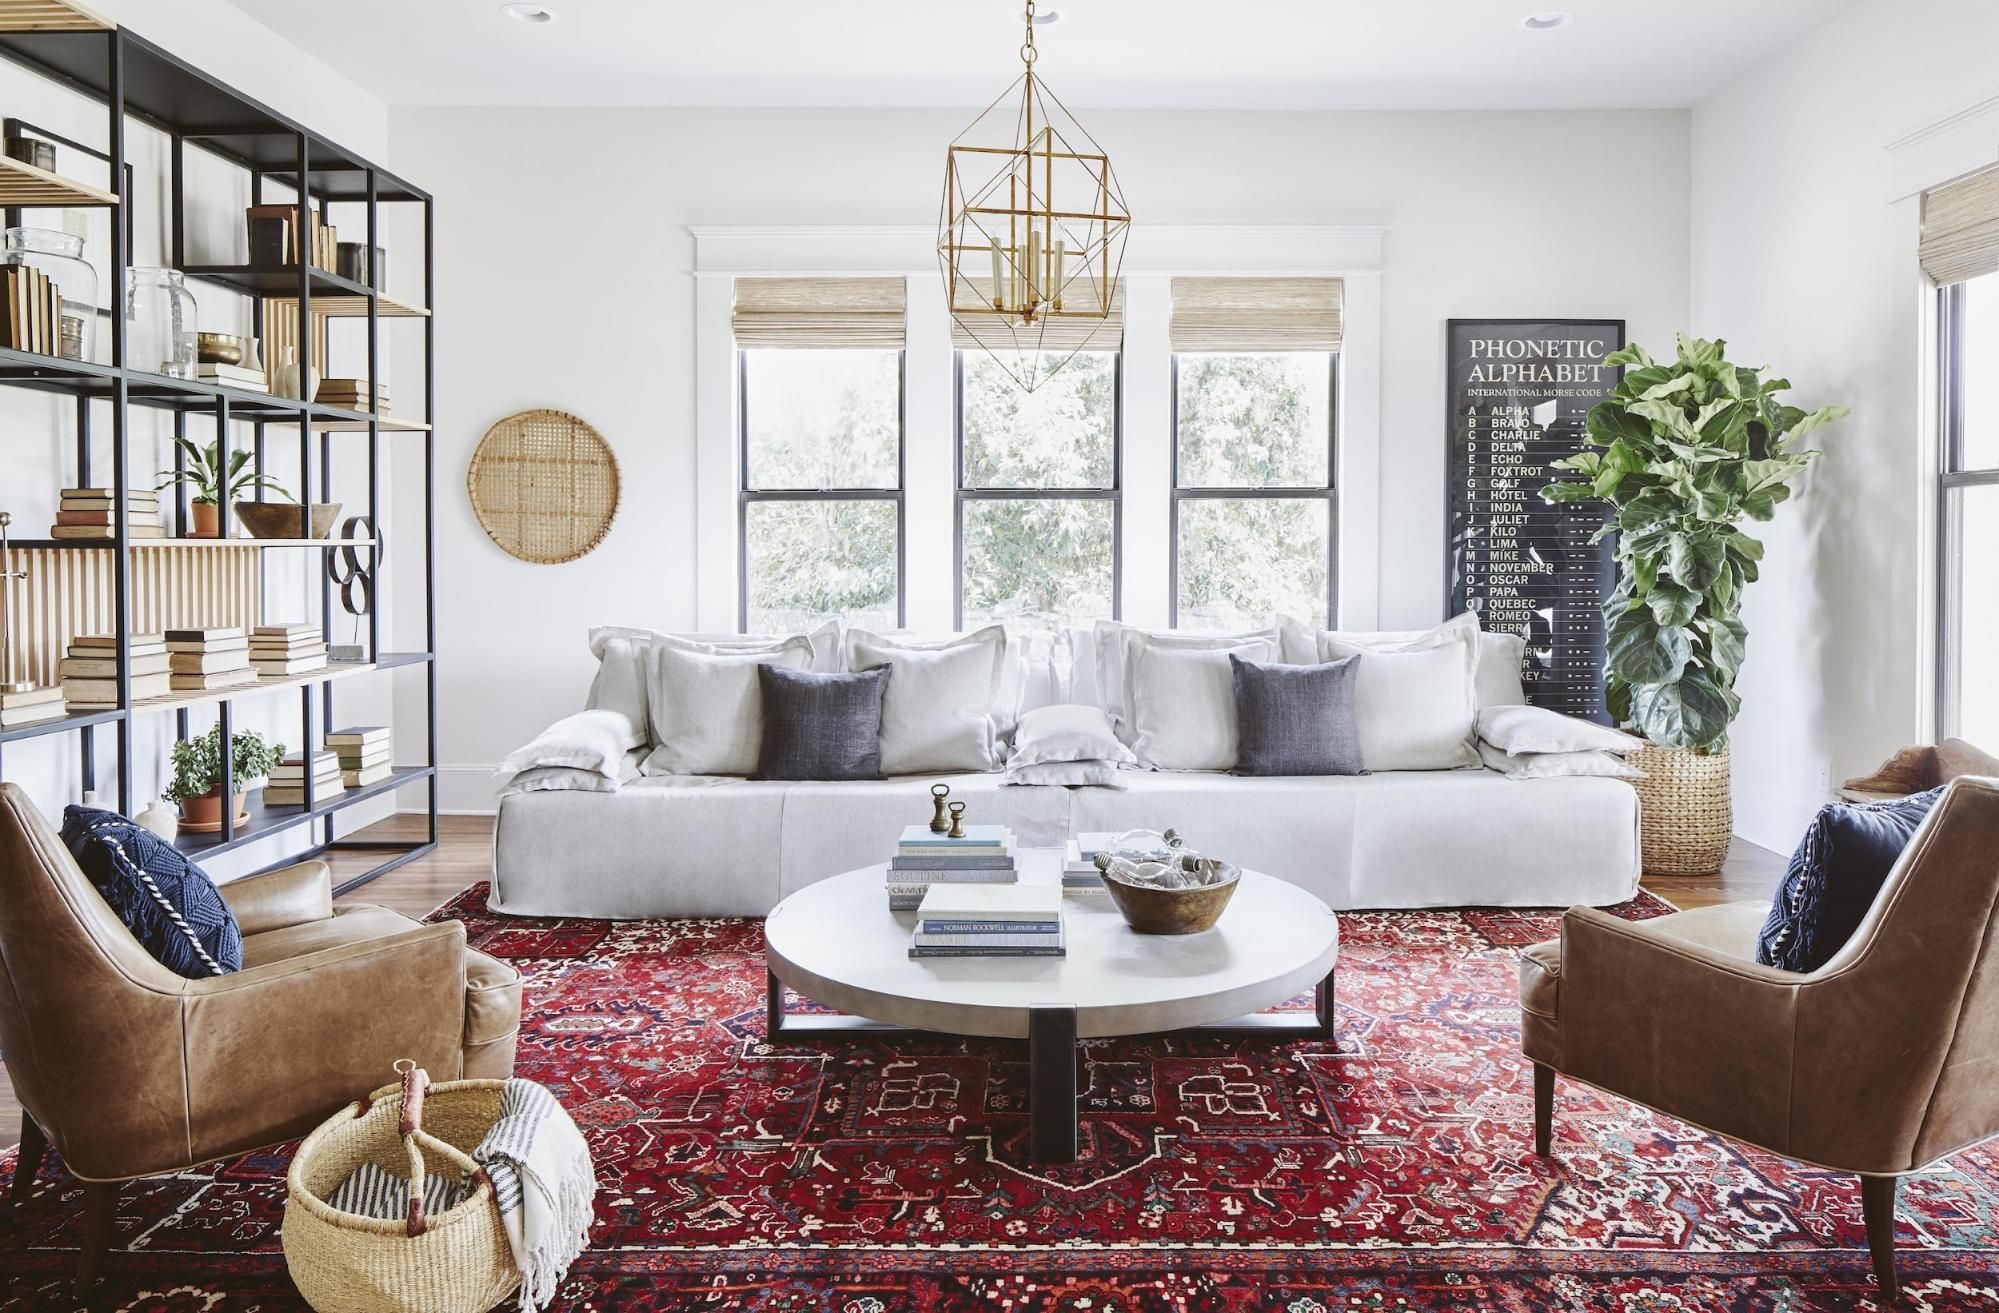 persian rugs, oriental rugs, home decor, home accessories, interior design, design ideas, cyber monday, black friday, online shopping, decor trends, london rug collection